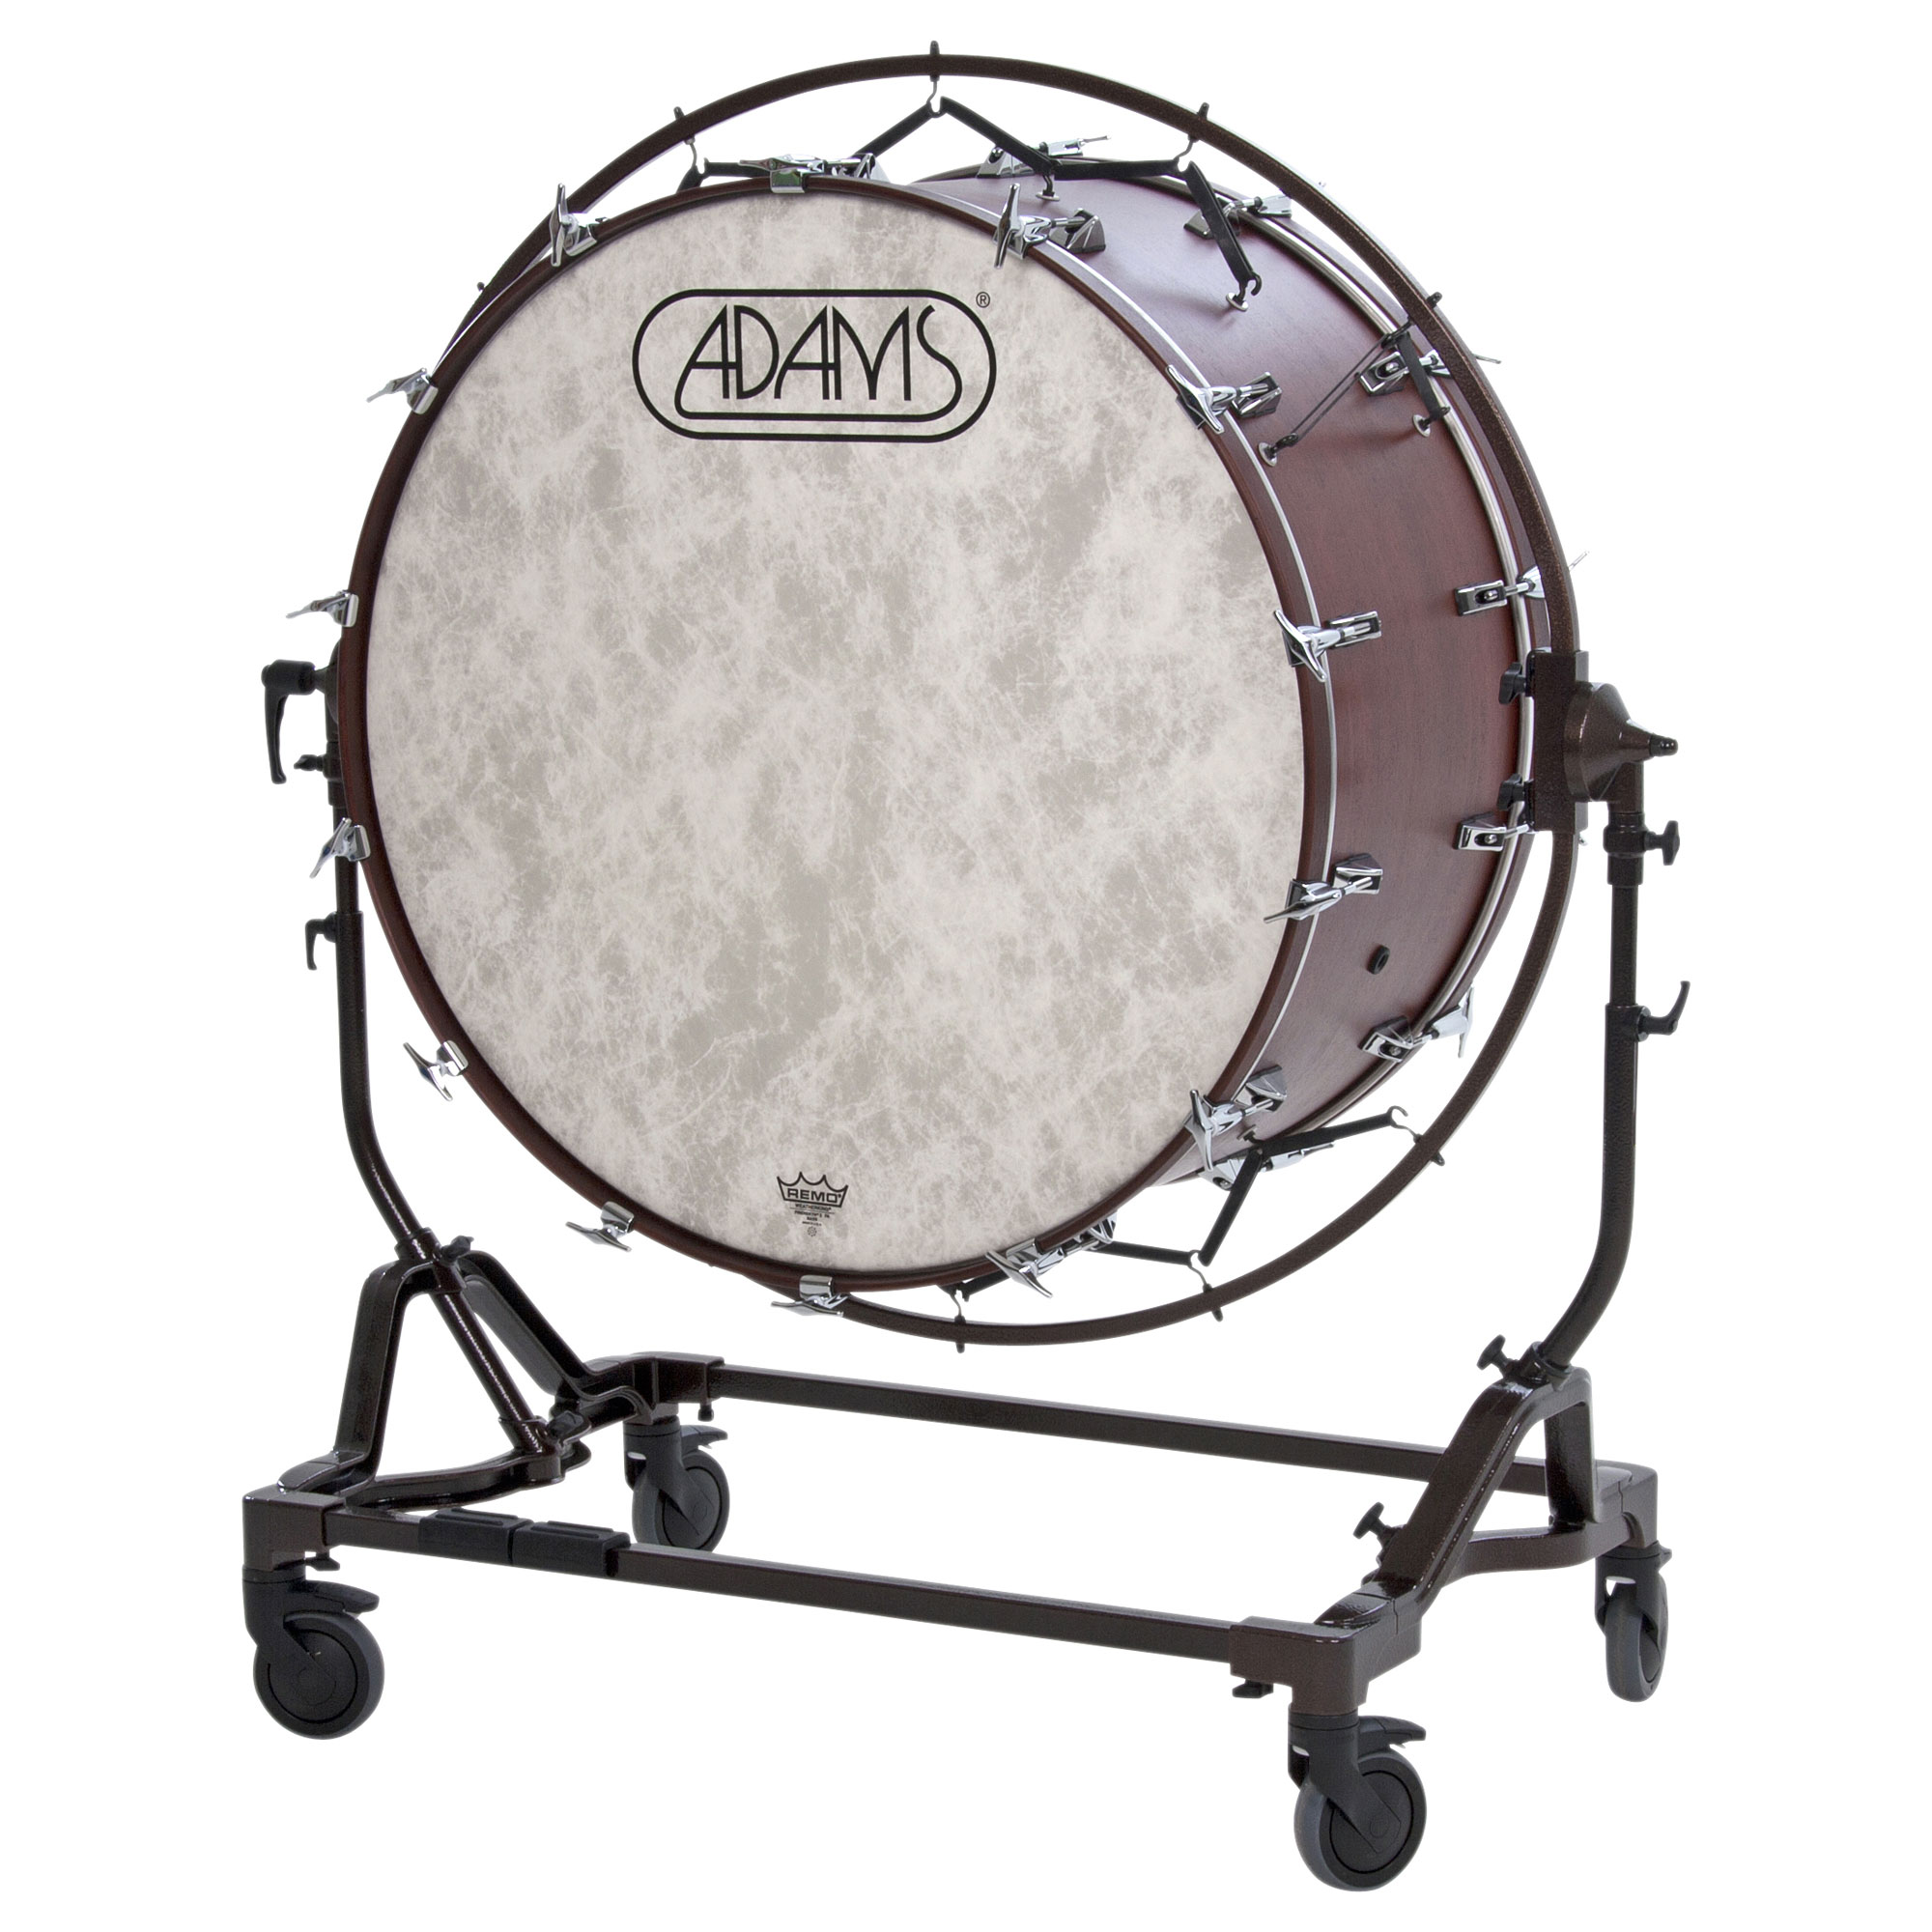 "Adams 36"" (Diameter) x 22"" (Deep) Concert Bass Drum with STBD Suspended Stand"